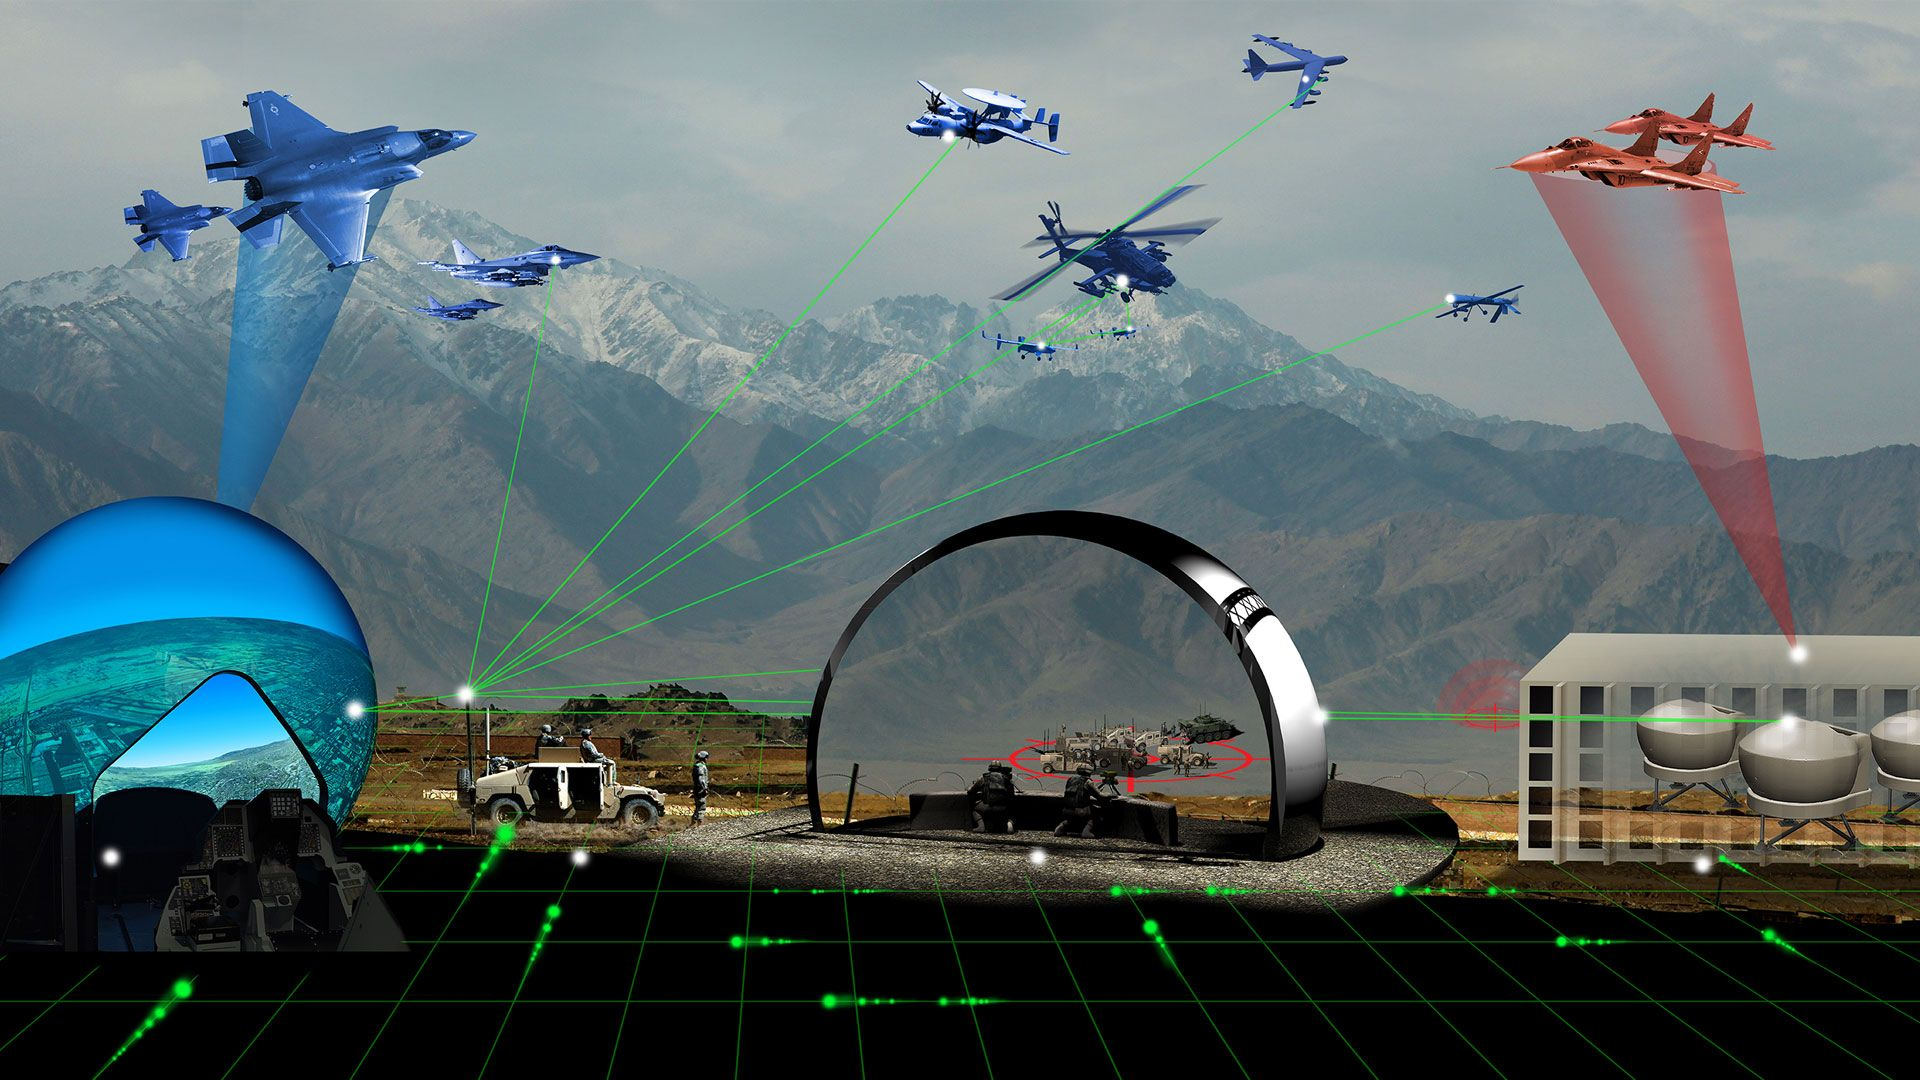 Autonomous Flying Training Data For Satellite And Drone Imagery In 2020 Instructional Systems Design Learning Technology Learning Process